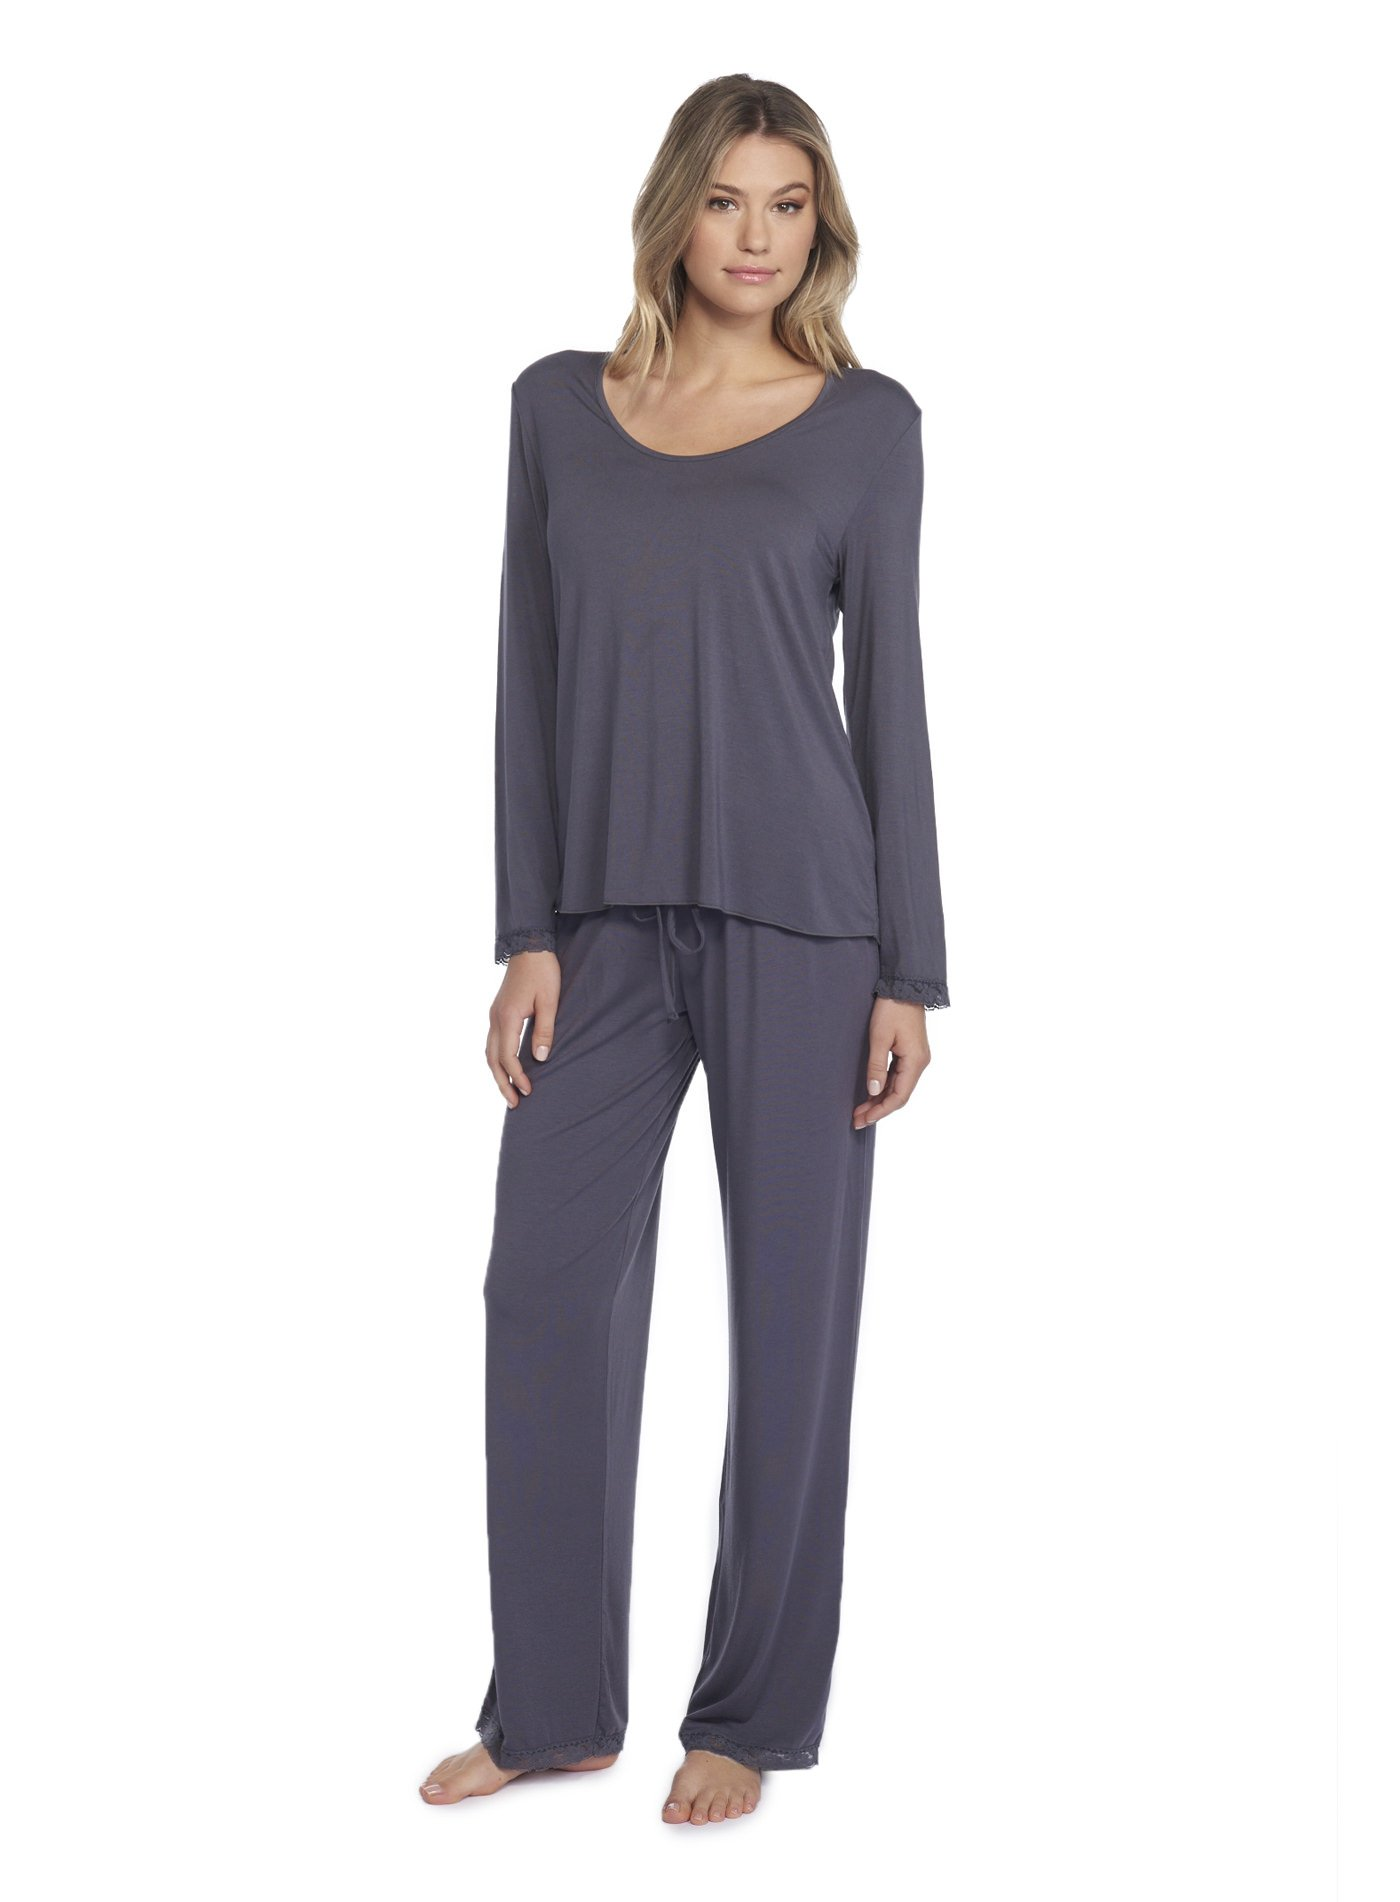 Barefoot Dreams Luxe Milk Jersey Classic Pant & U-Neck Long Sleeve Tee Set Graphite